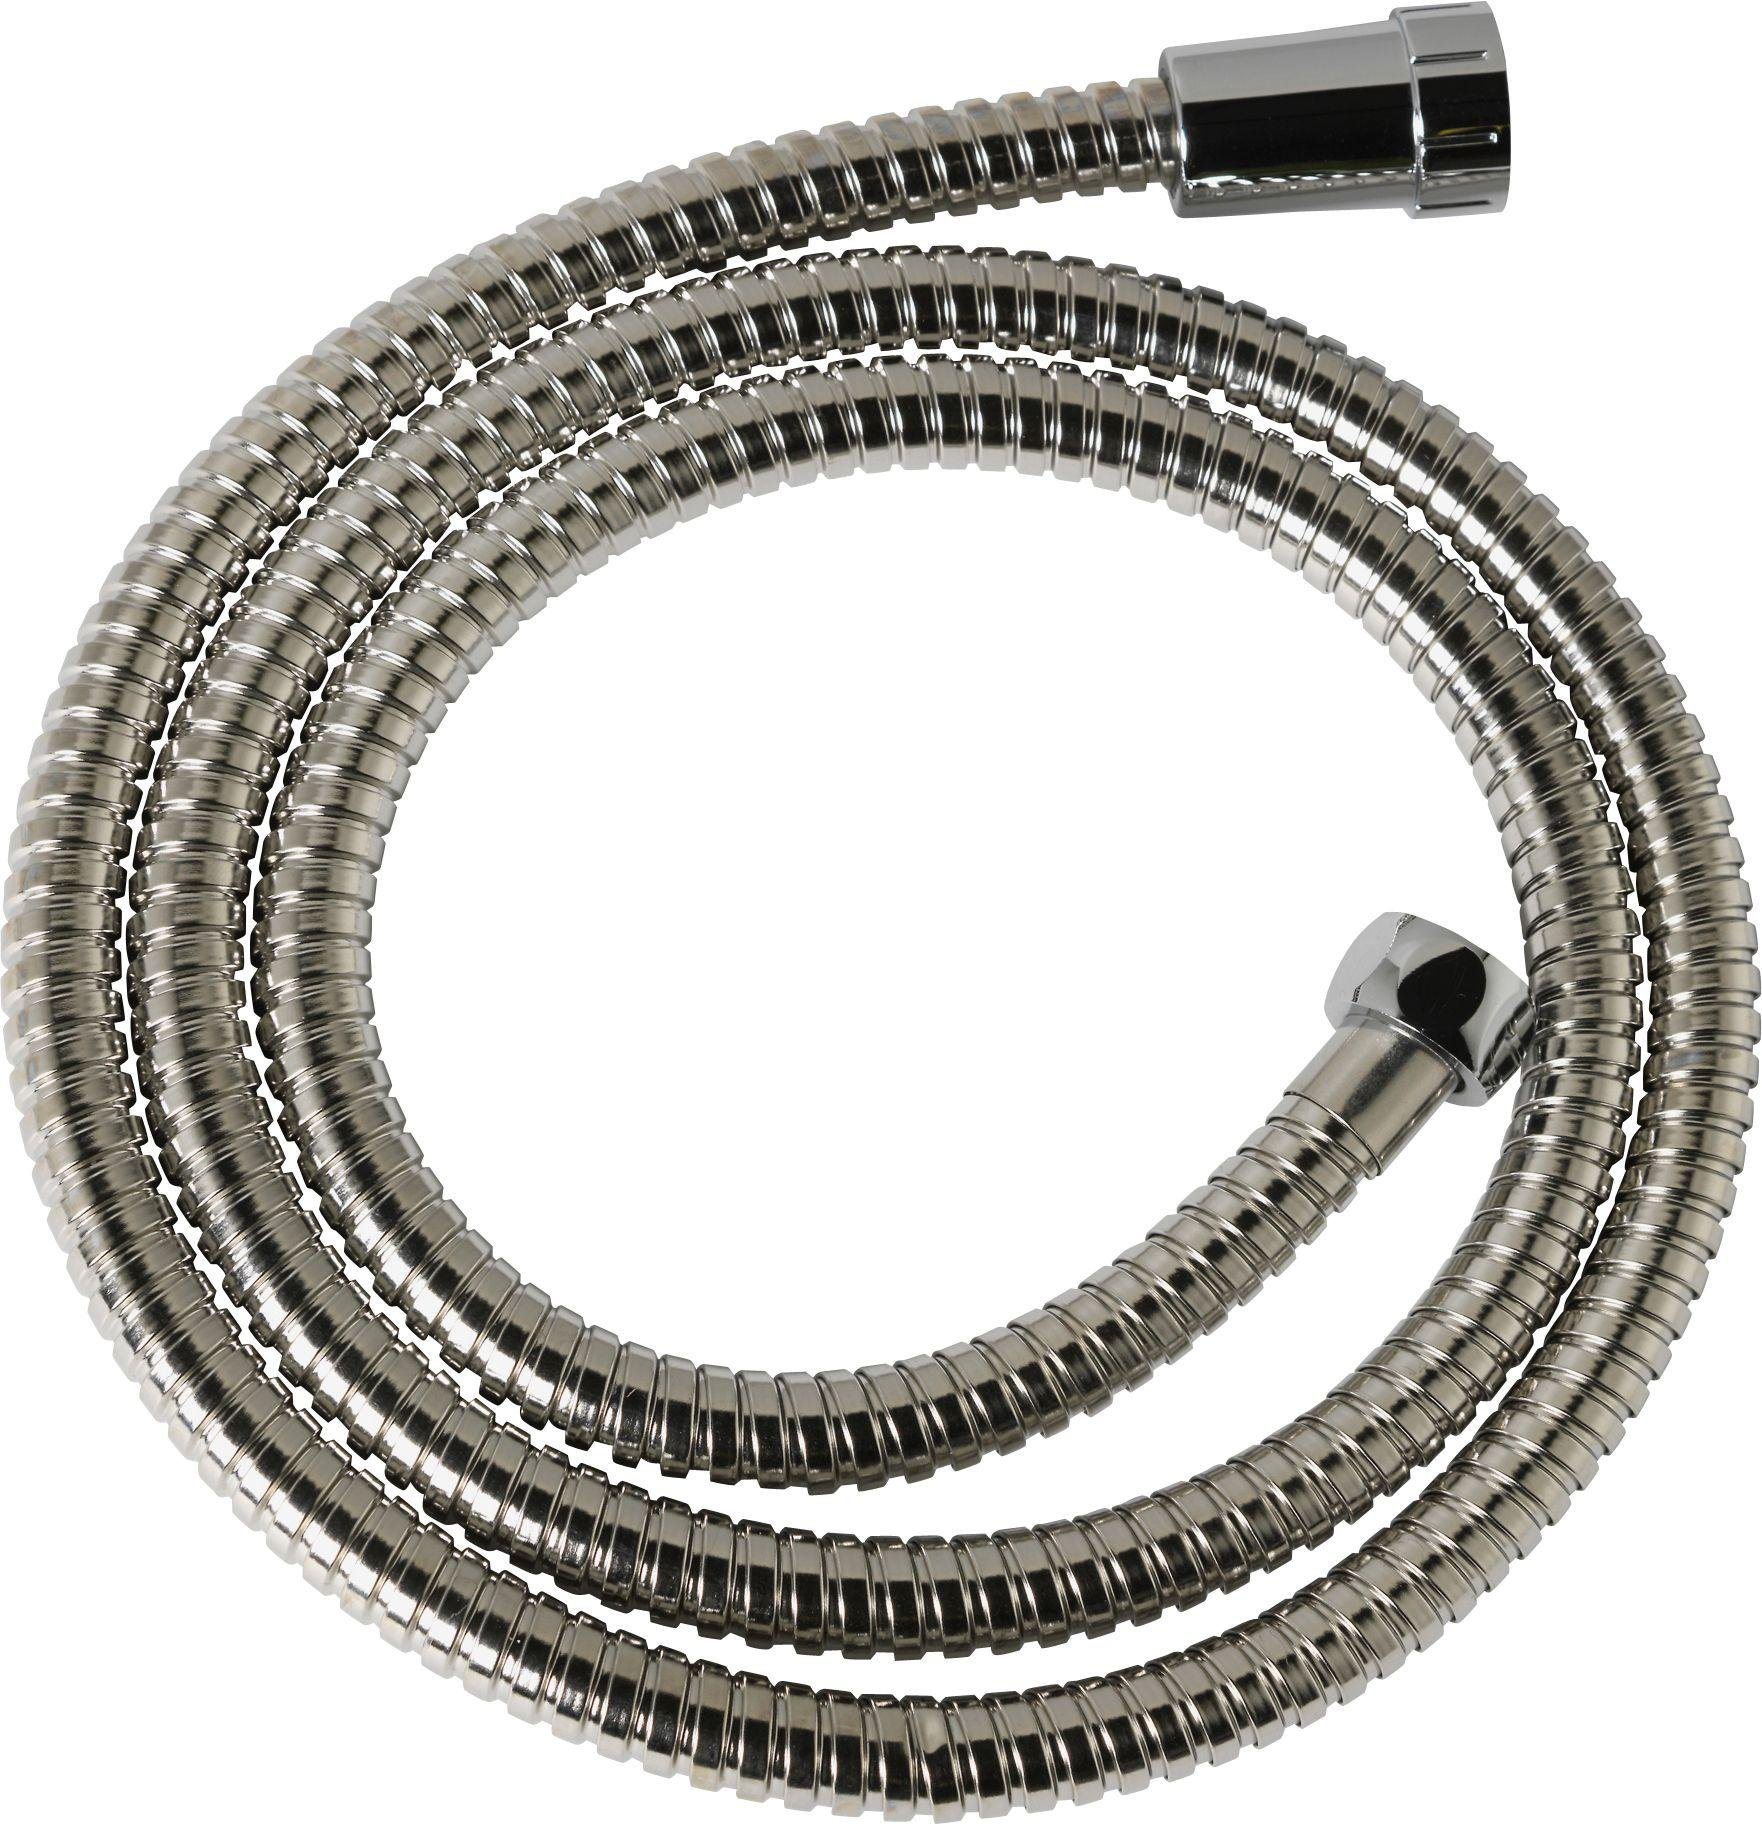 moretti extendable stainless steel shower hose flexible. Black Bedroom Furniture Sets. Home Design Ideas